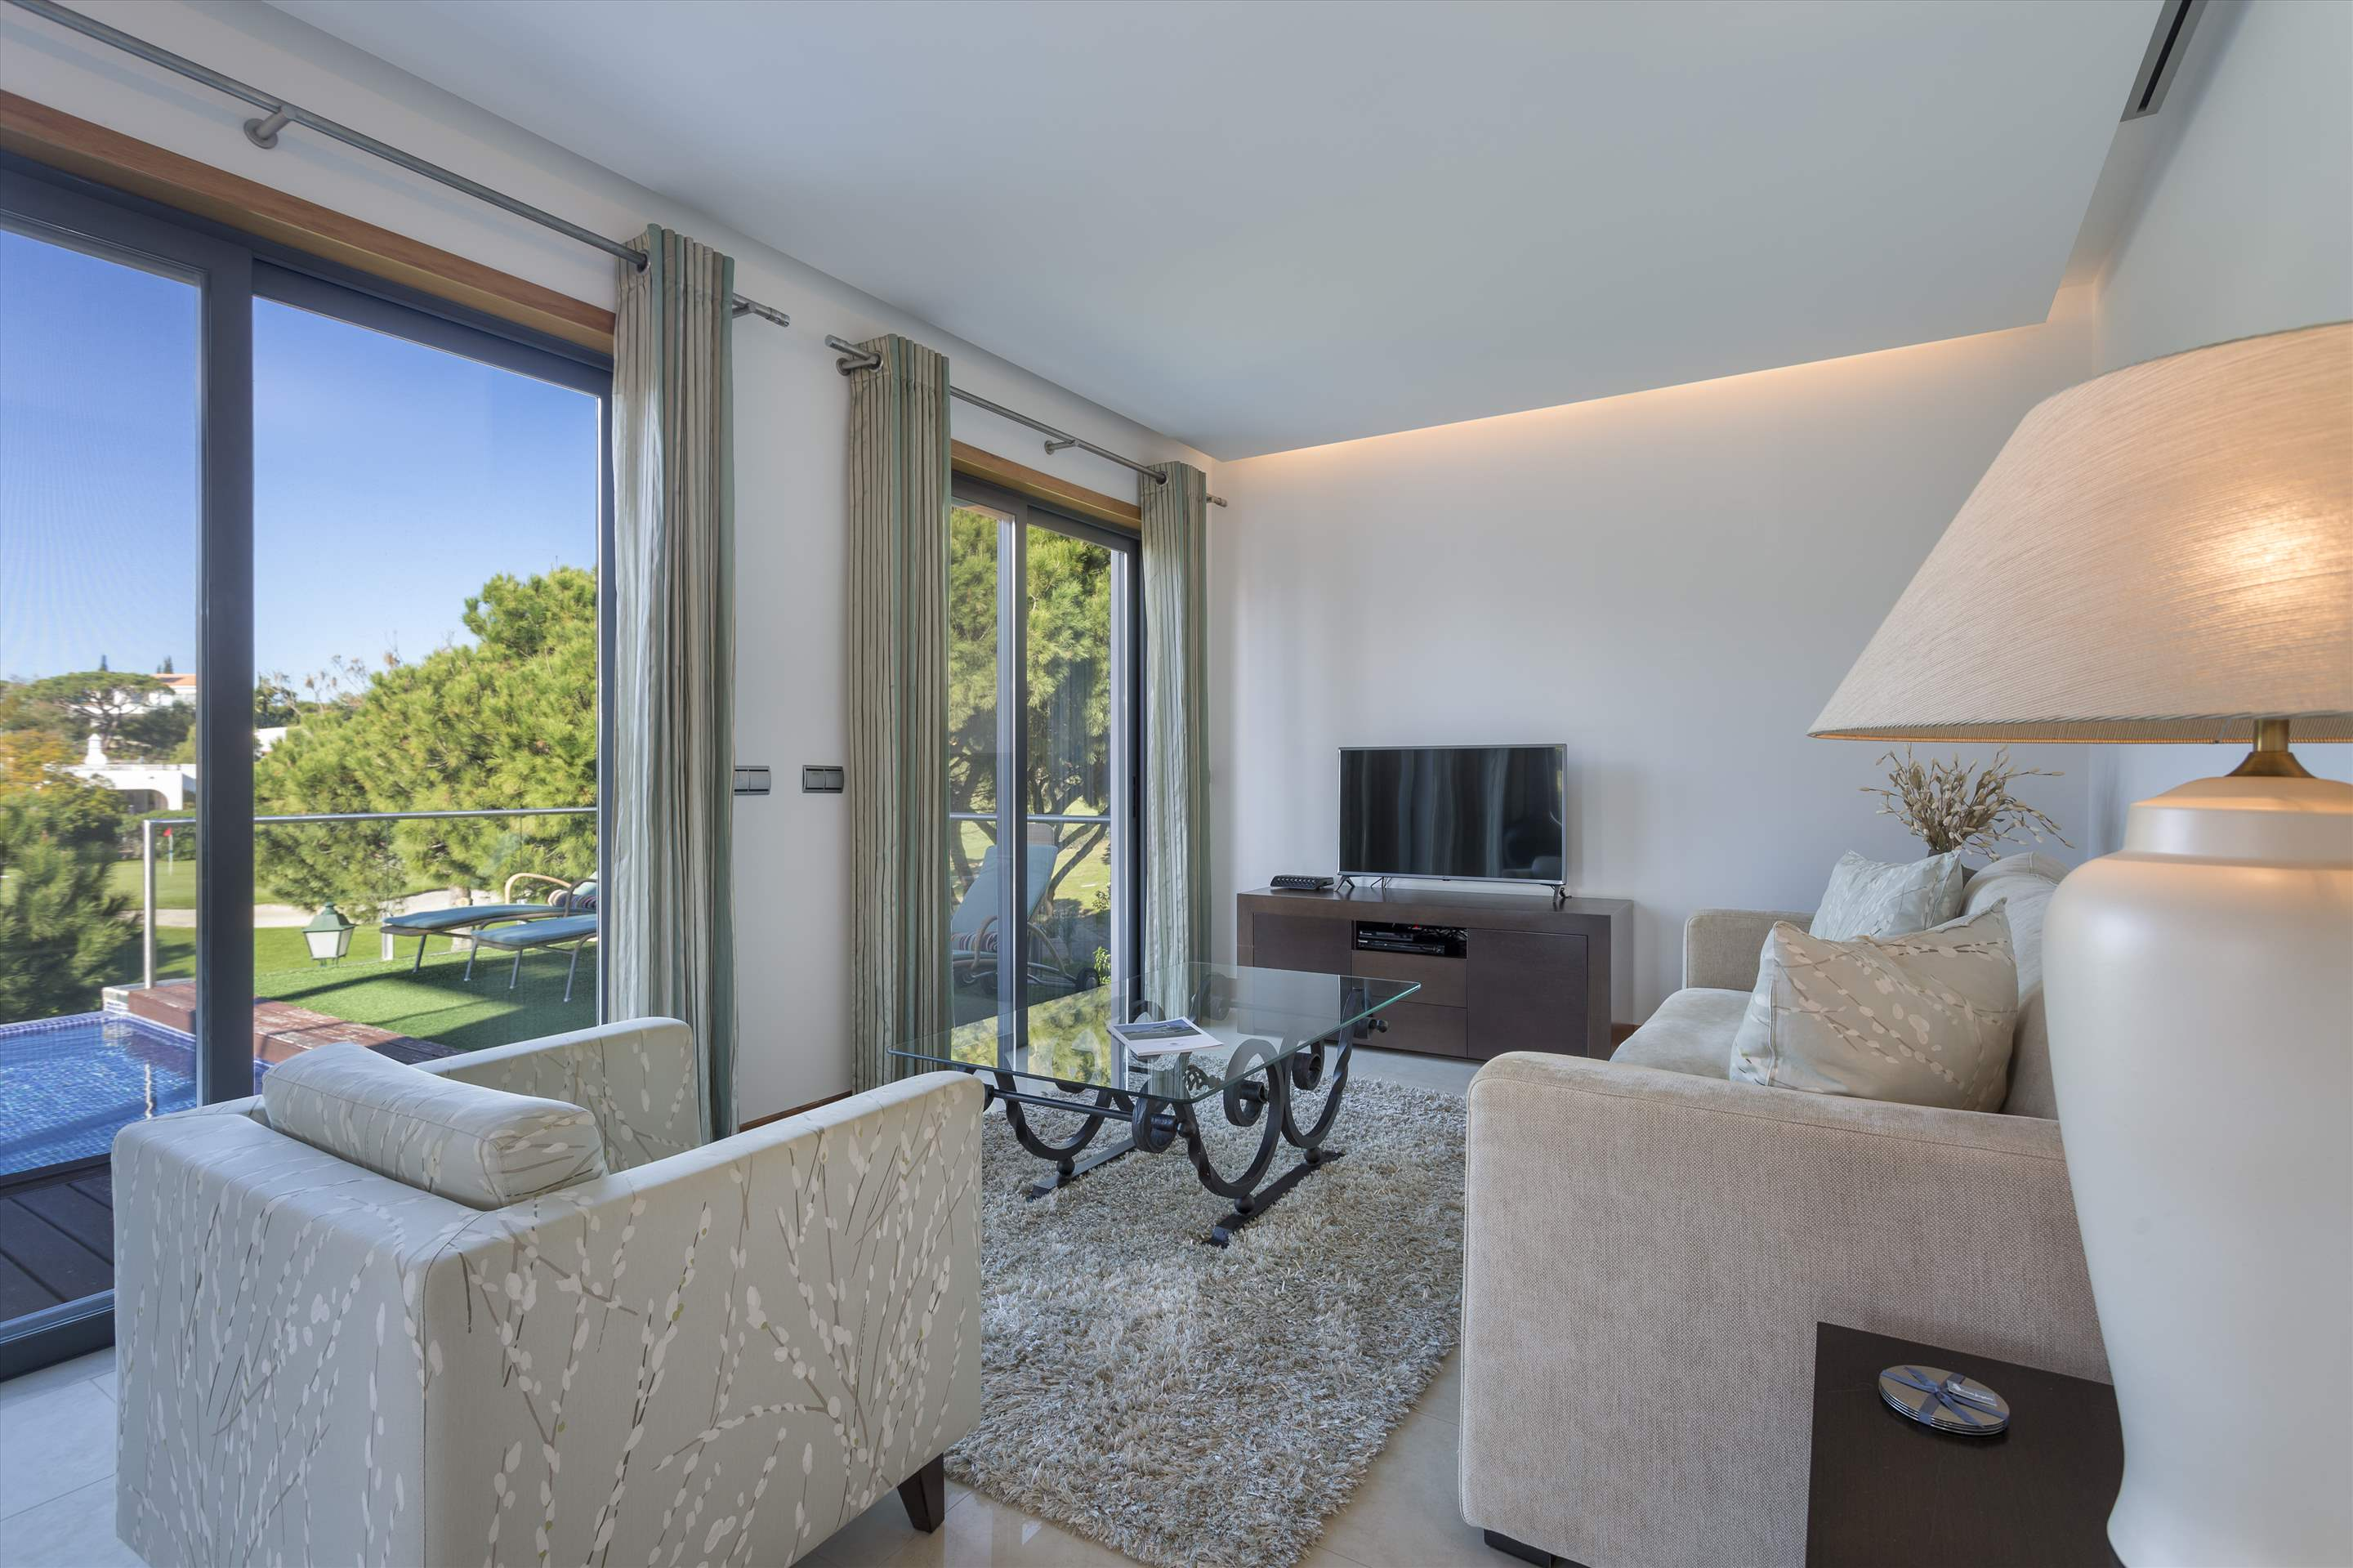 Apartment Alexandra, 2 bedroom apartment in Vale do Lobo, Algarve Photo #4